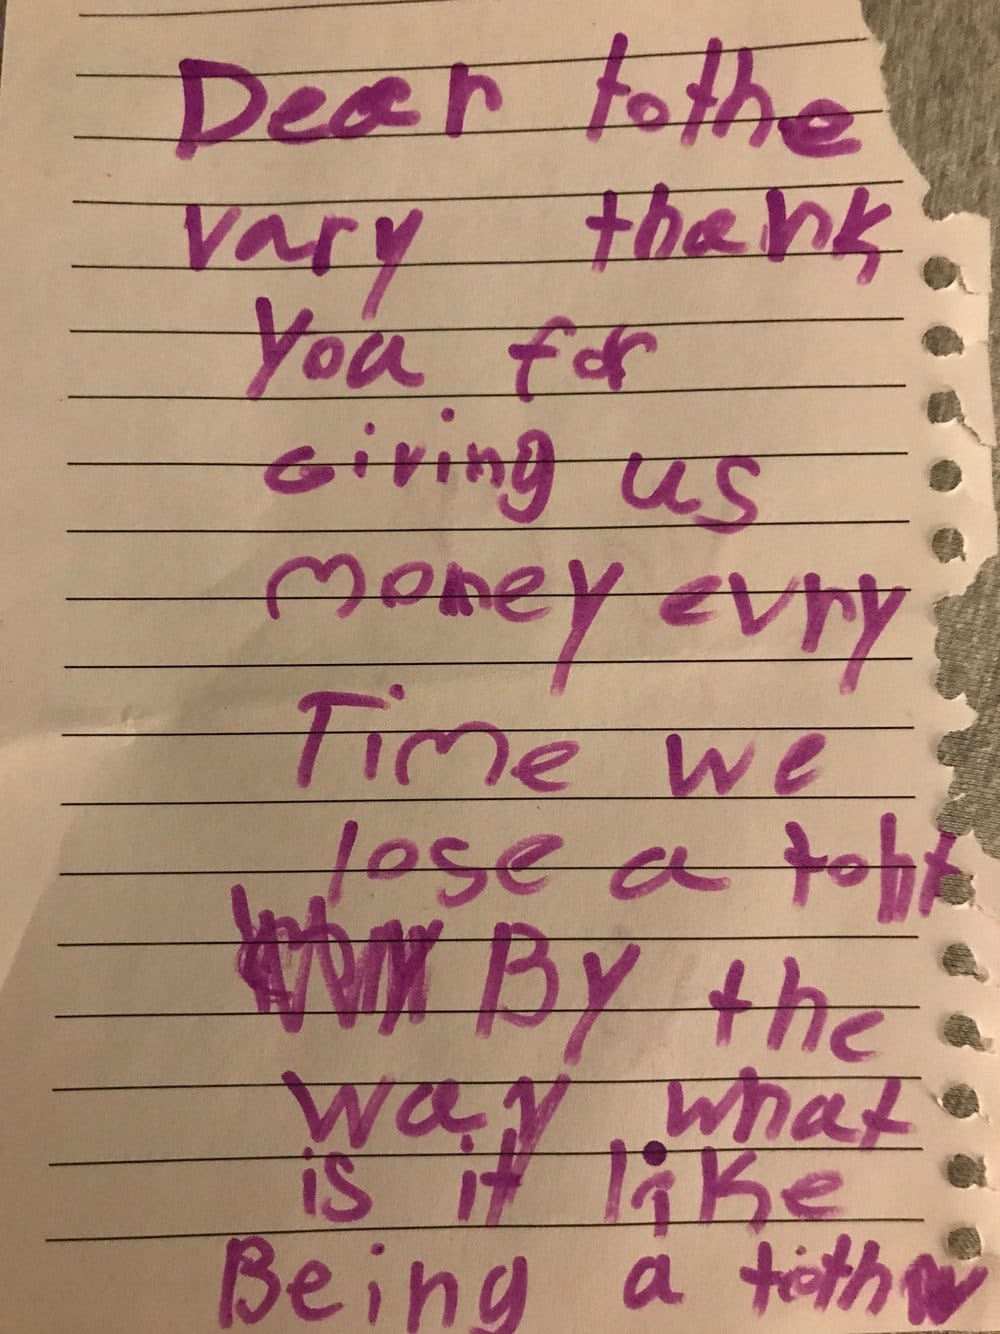 Dear Tooth Fairy, Thank you for giving us money every time we lose a tooth. By the way, what is it like being a tooth fairy?